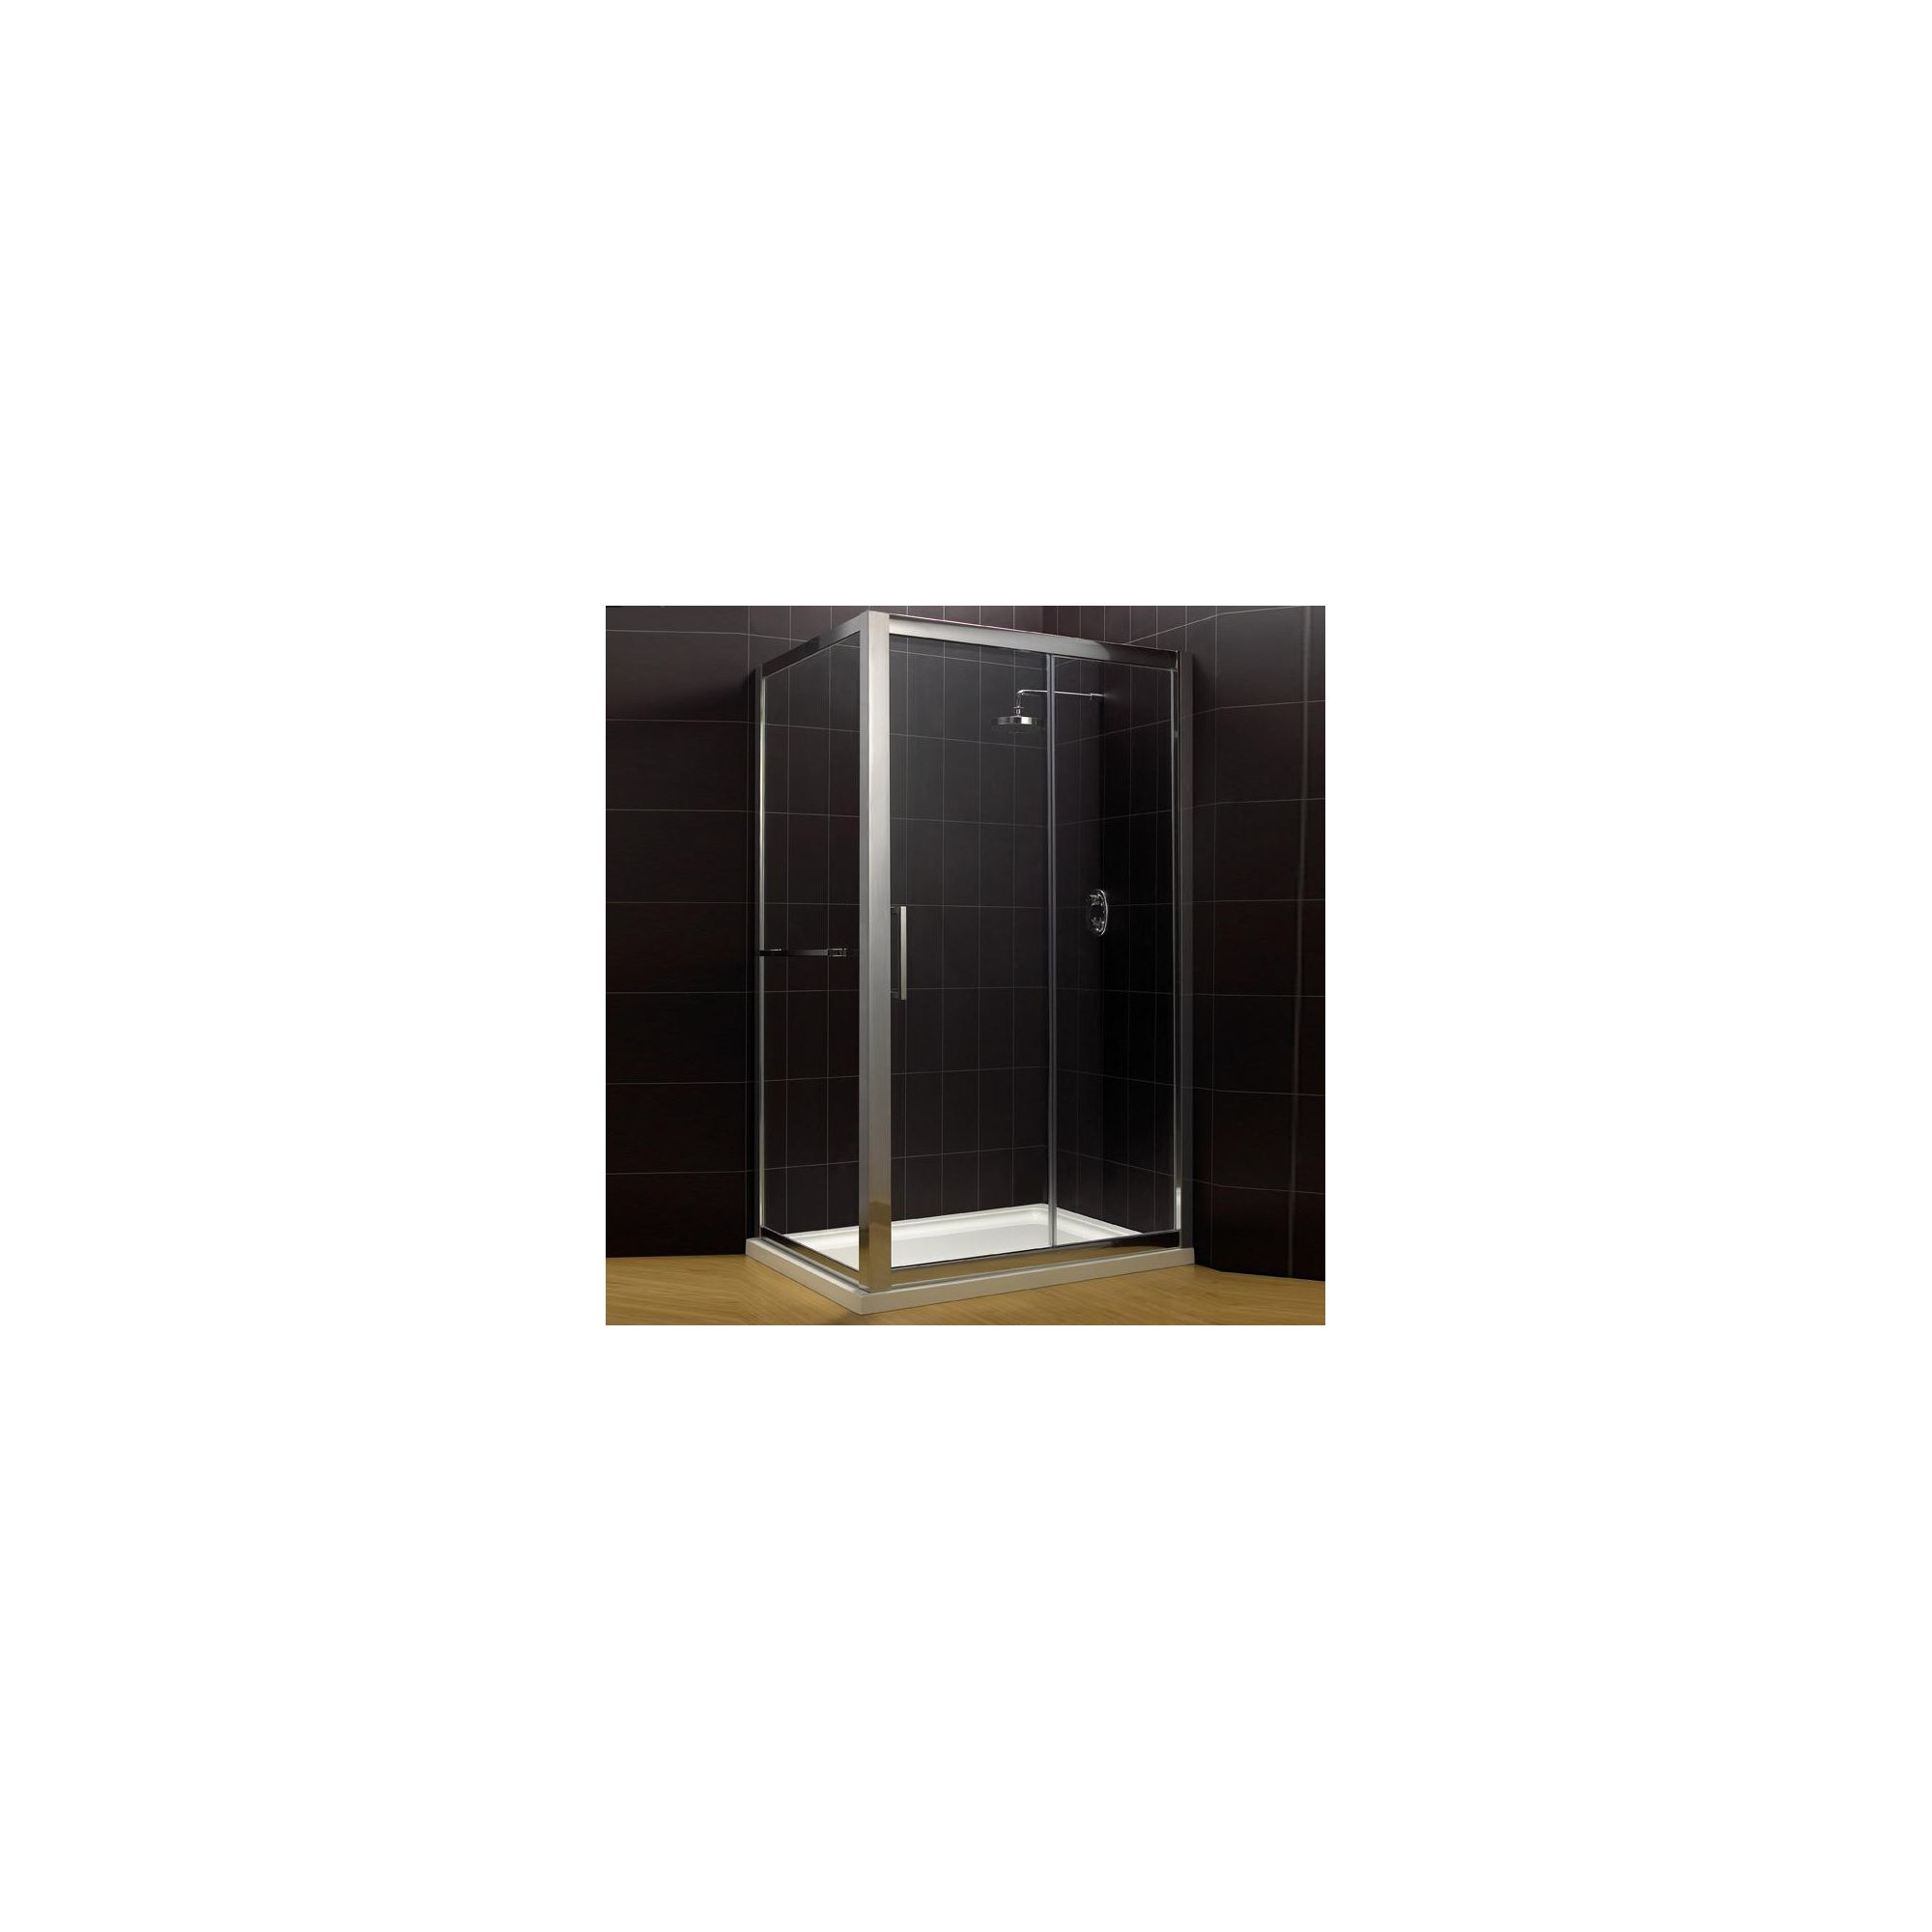 Duchy Supreme Silver Sliding Door Shower Enclosure with Towel Rail, 1100mm x 800mm, Standard Tray, 8mm Glass at Tesco Direct